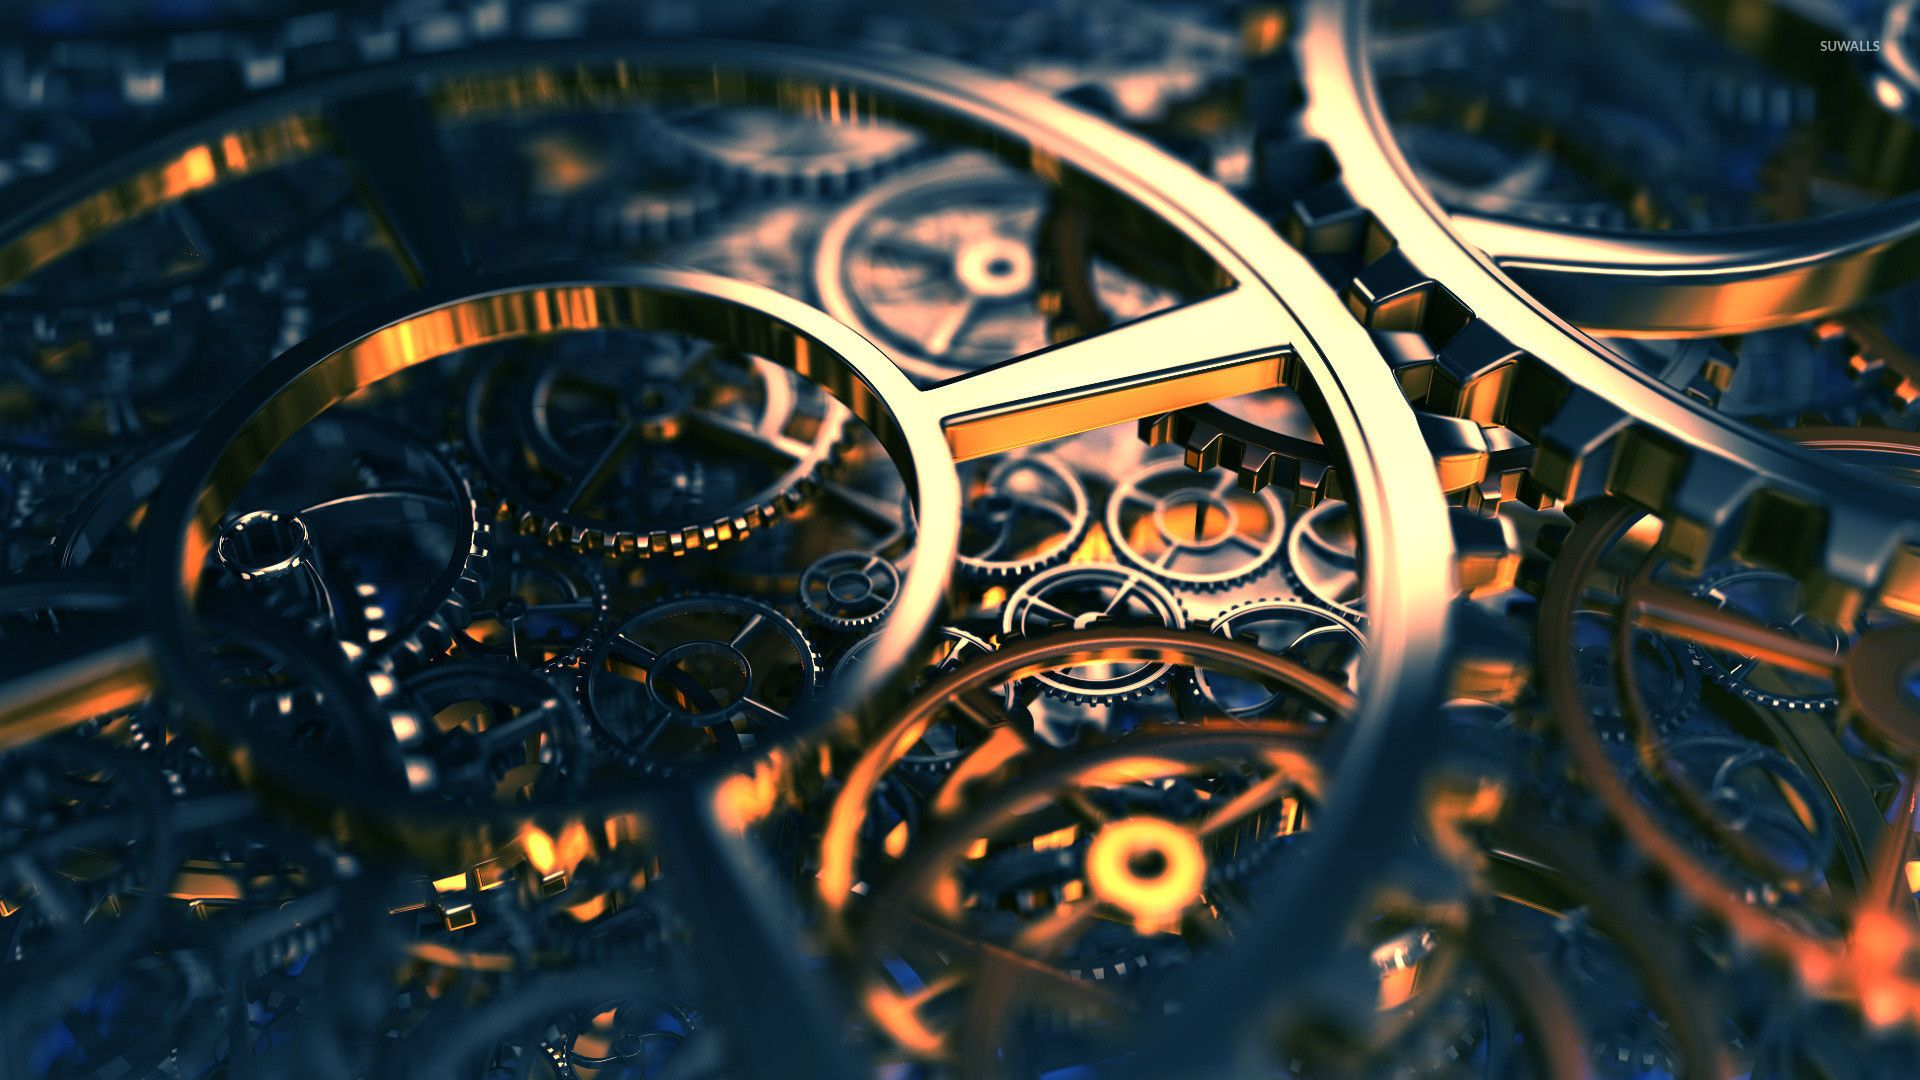 Gears Wallpapers Top Free Gears Backgrounds Wallpaperaccess